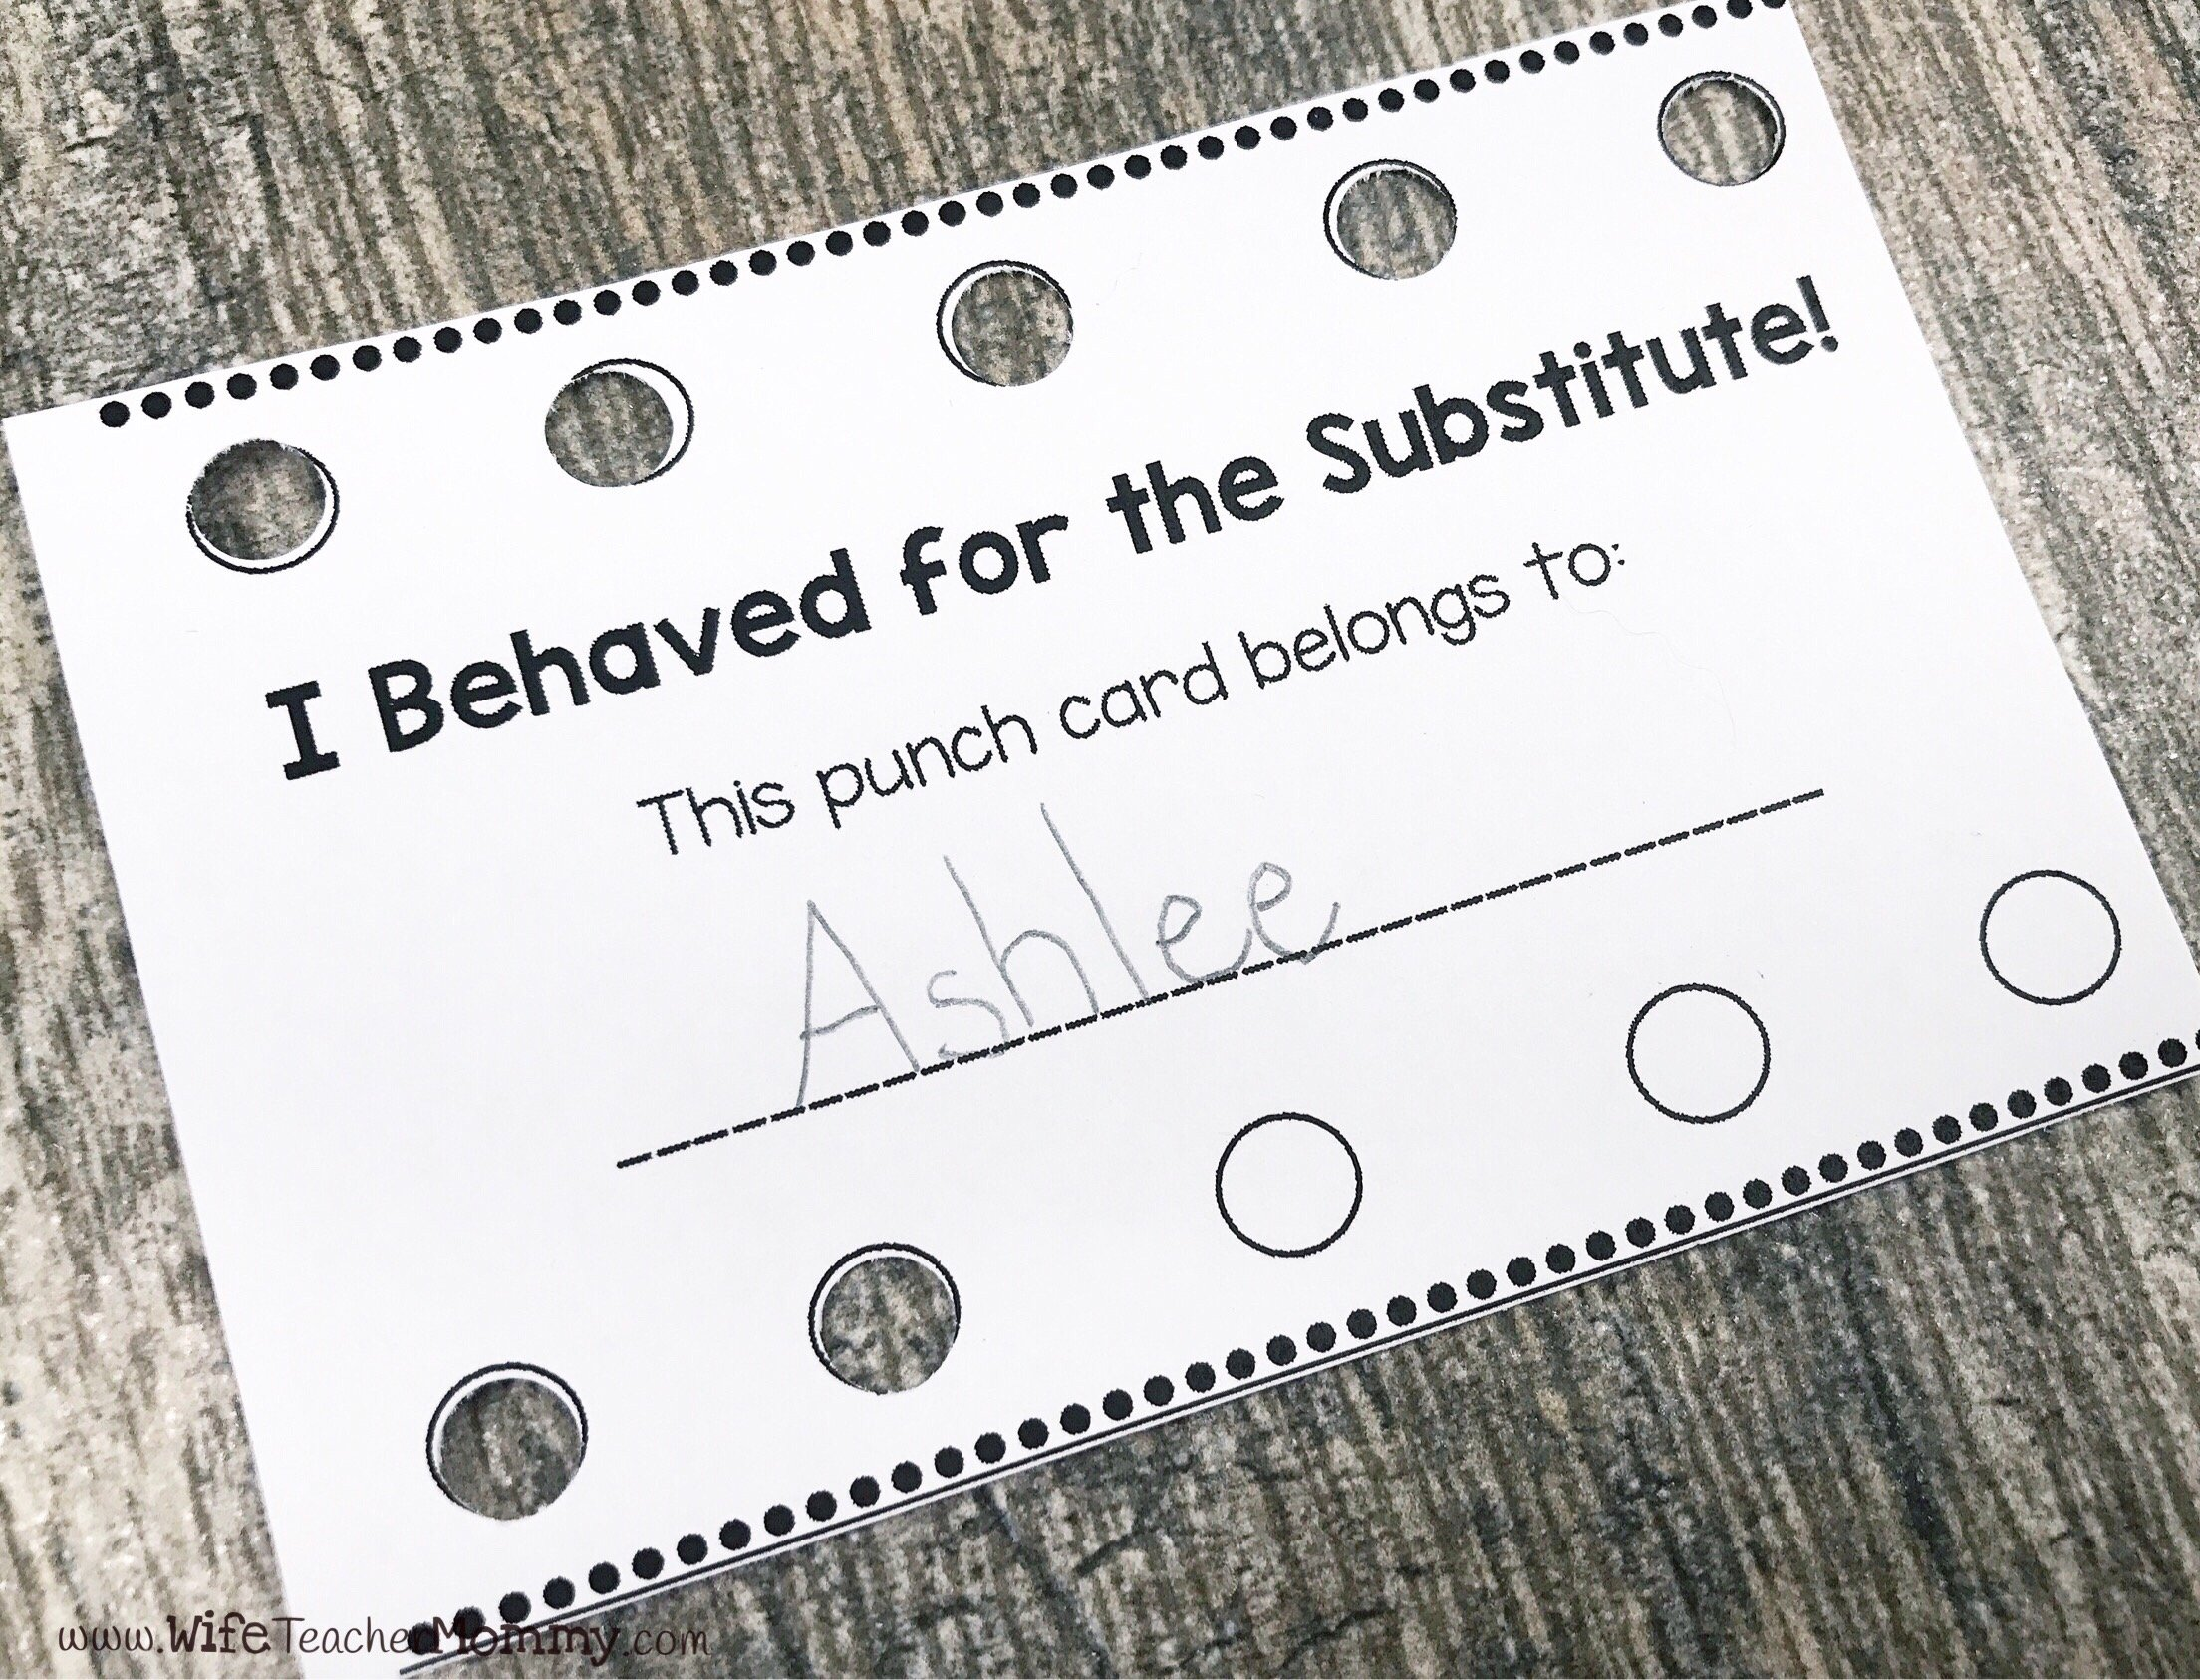 Use substitute punch cards as an incentive for good behavior!